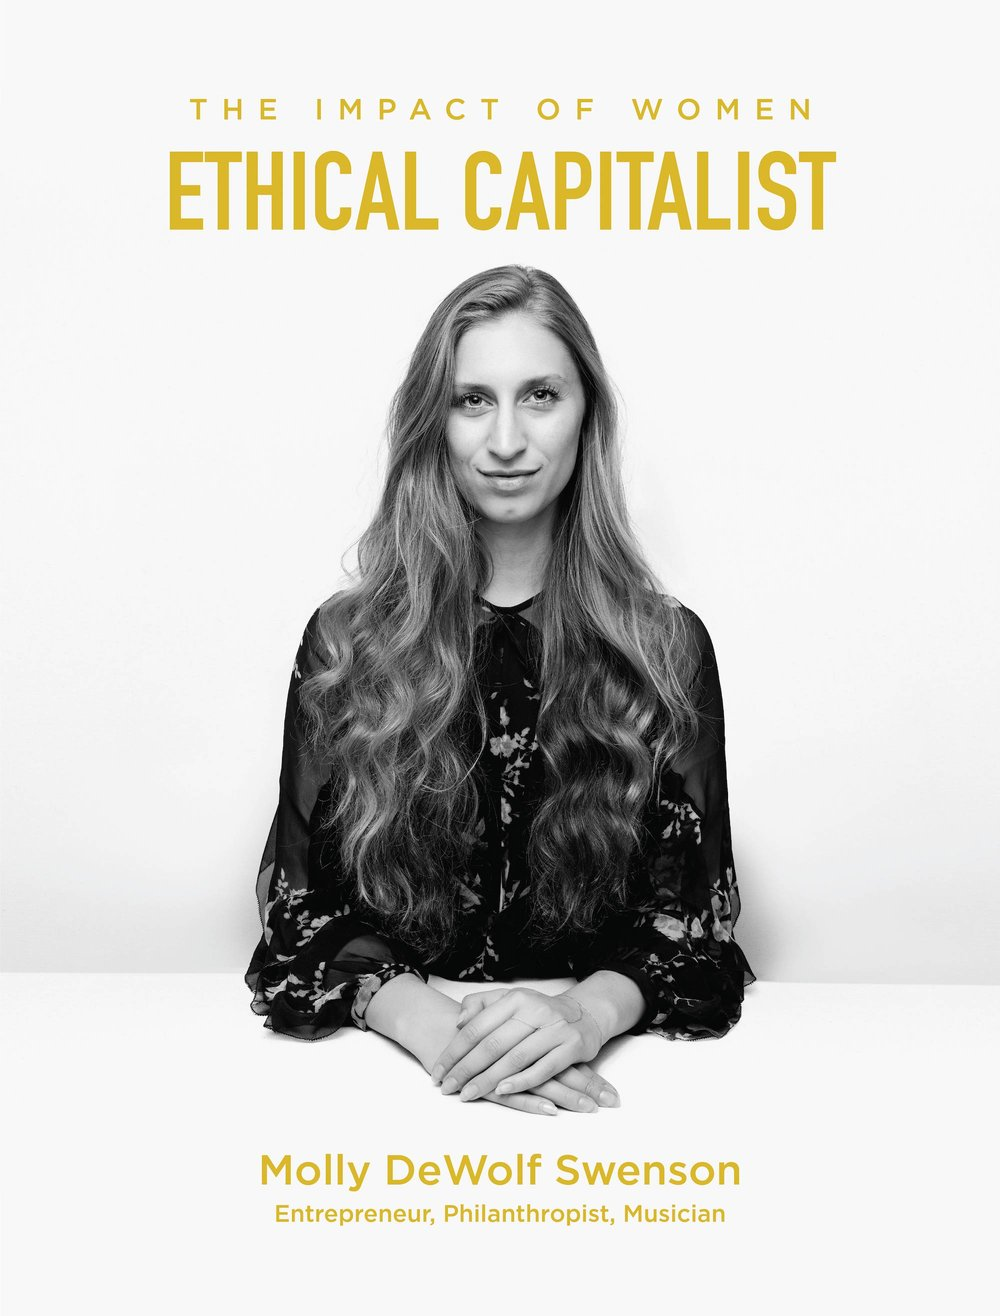 Molly Swenson is an Ethical Capitalist